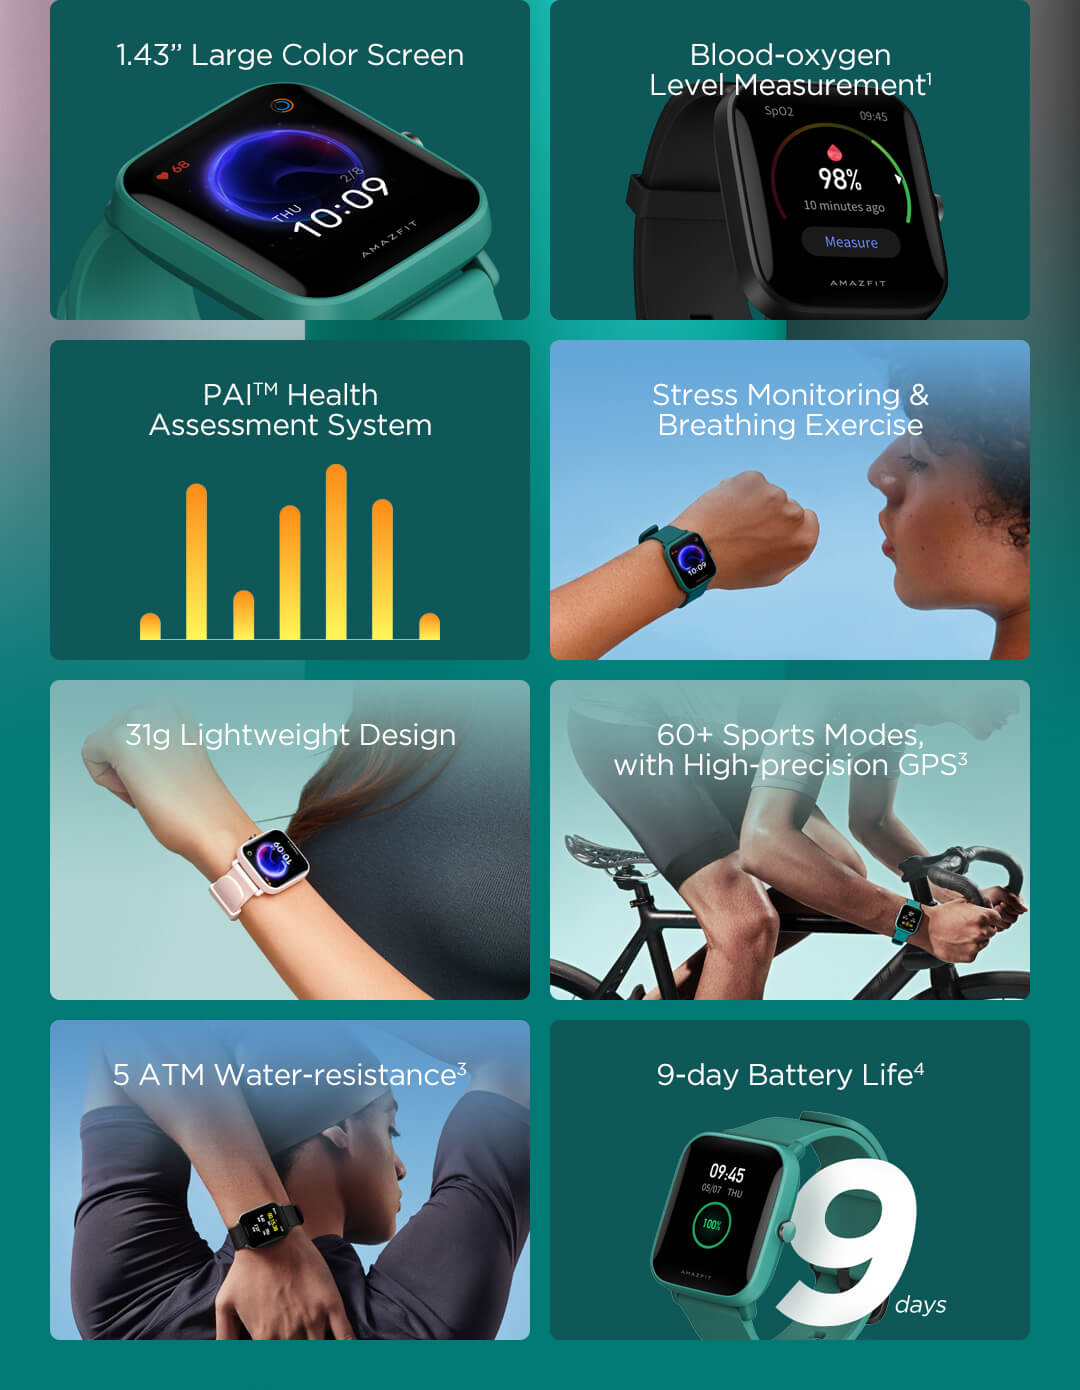 AMAZFIT Bip U Smartwatch, jam tangan pintar, bluetooth, 5ATM, smart fitness, 1.4 inch screen, sports more, blood oxygen, heart rate monitor, sleep monitor